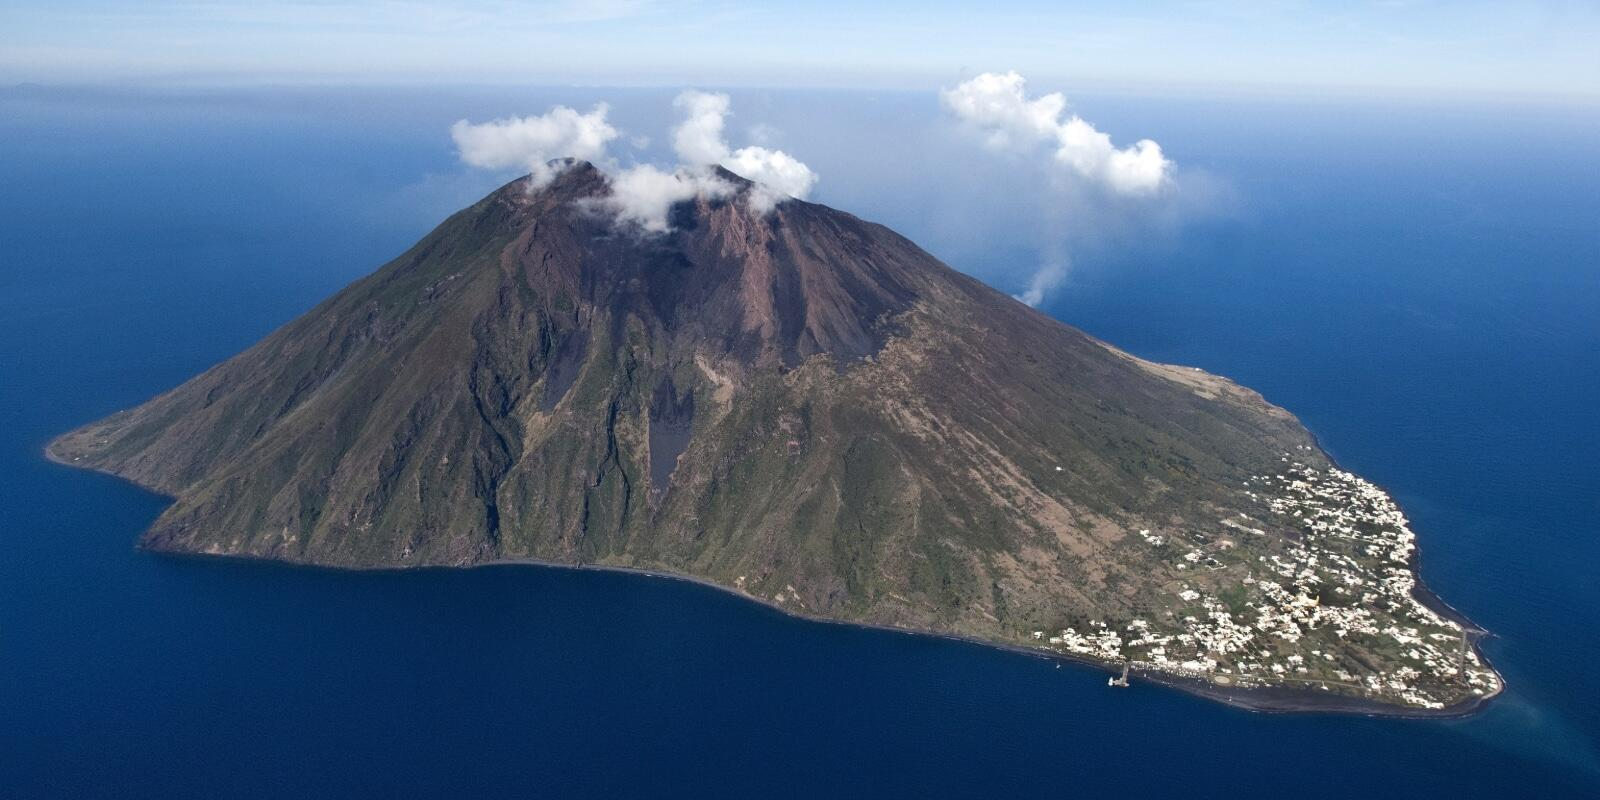 Mid-August in the Aeolian Islands in a 24 meter all inclusive luxury gulet